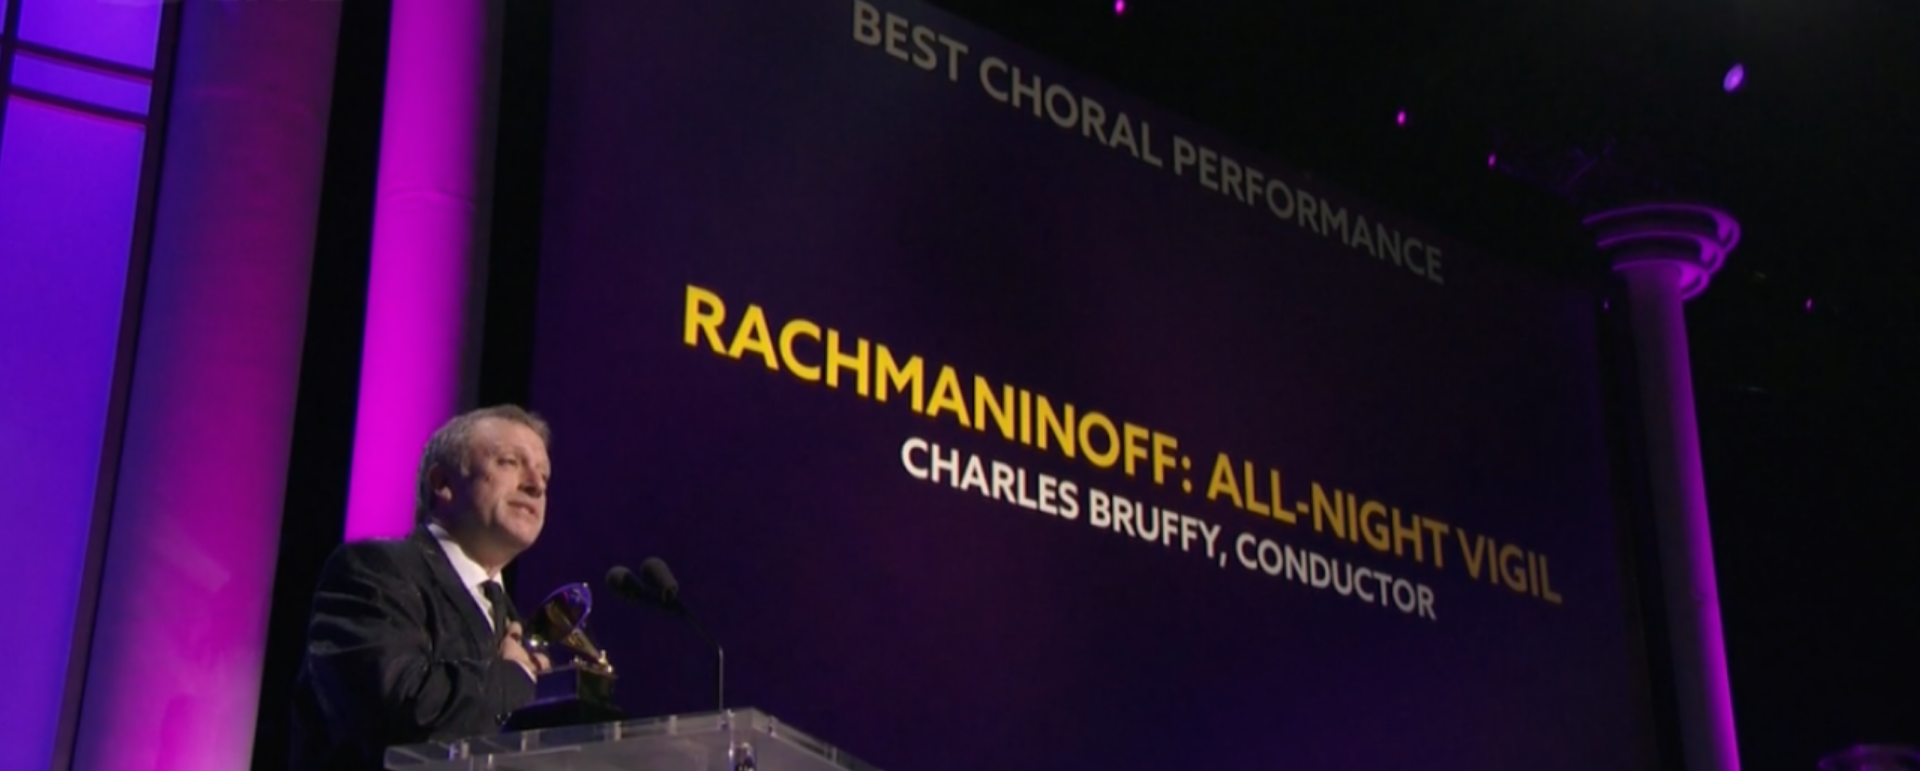 Charles Bruffy wins Best Choral Performance Grammy